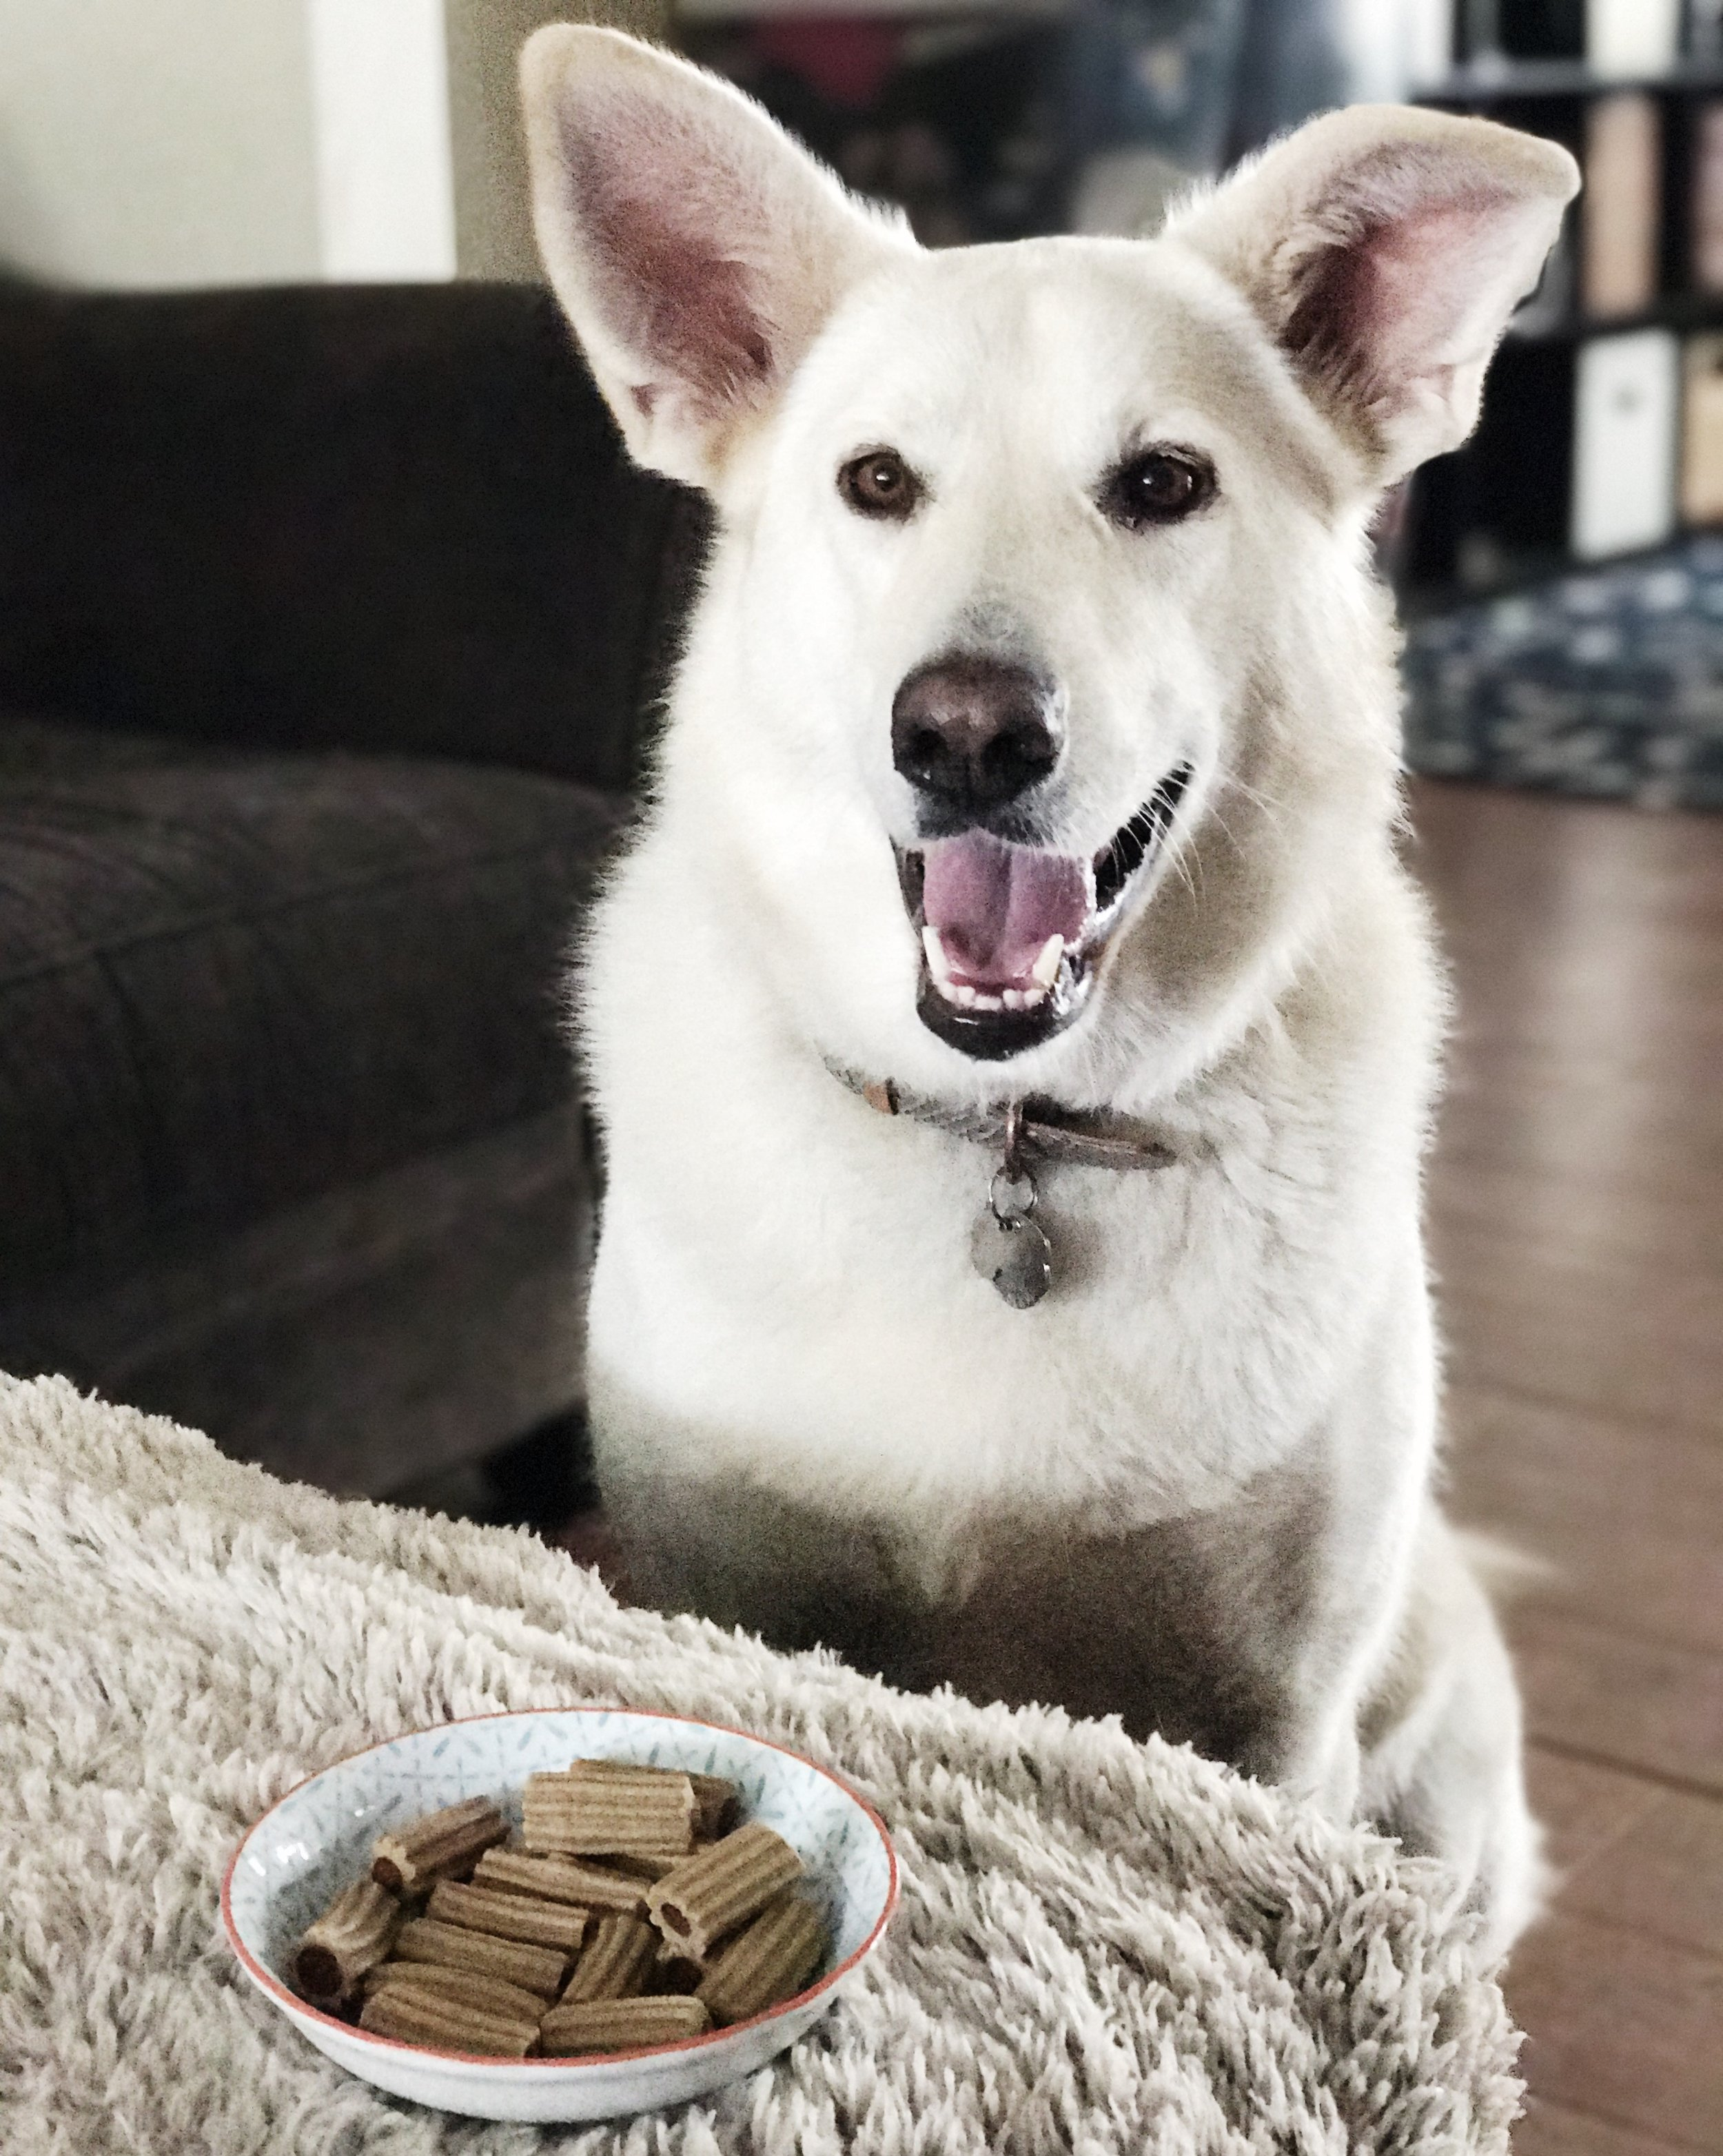 My pup Snow has been enjoying her  Pawsta from Chewy.   Why can't all dog treats be this cute?